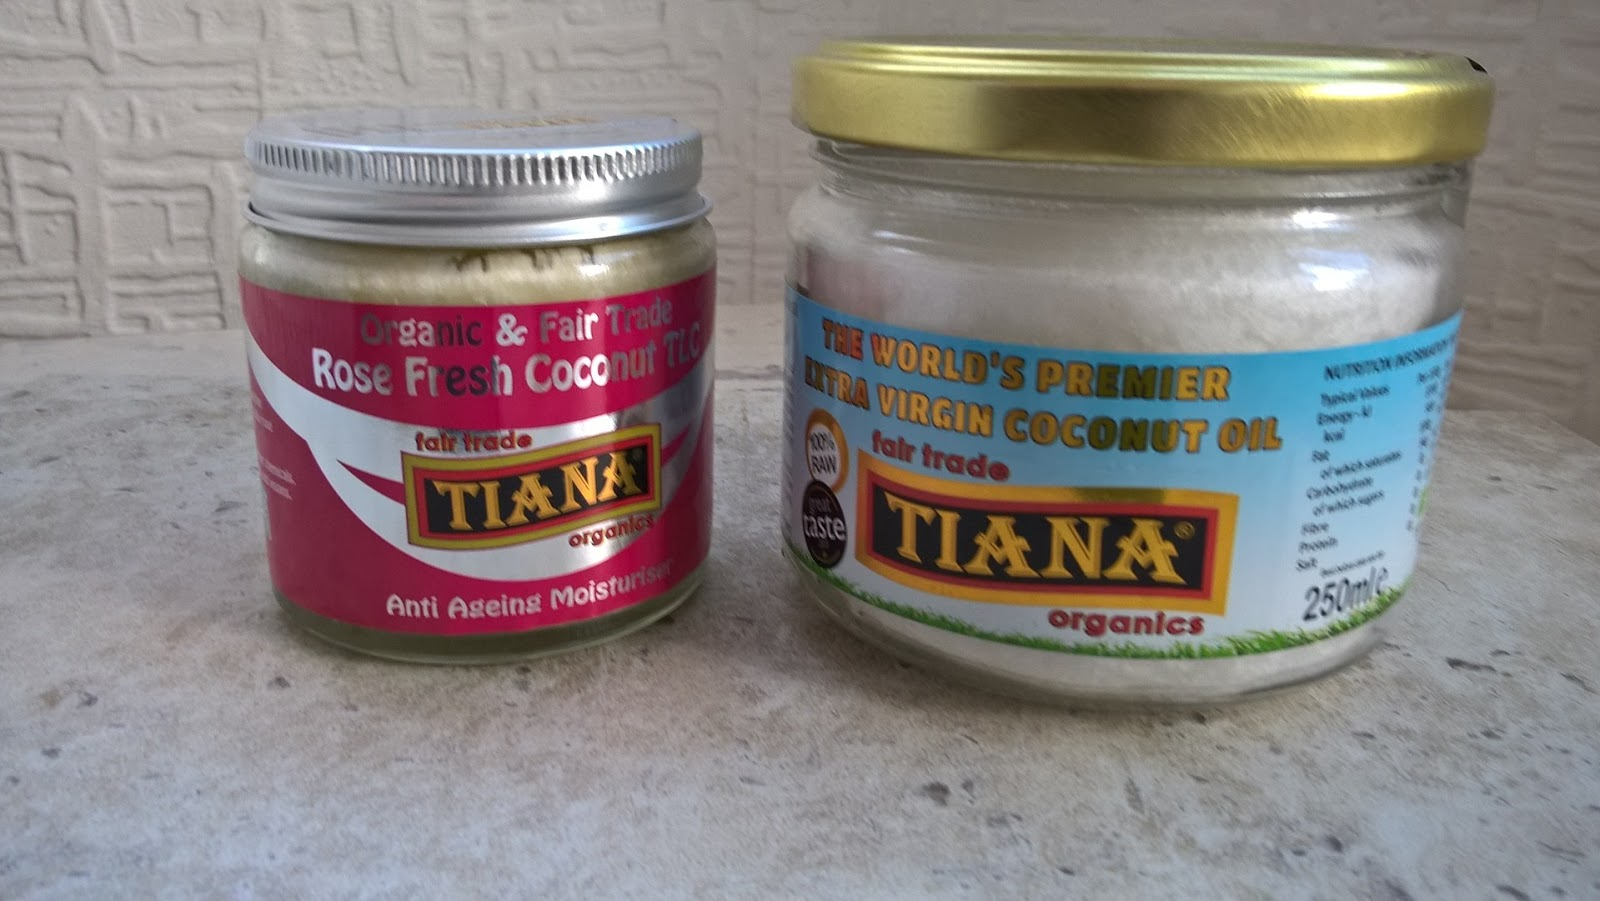 Tiana Extra Virgin Coconut Oil & Rose Fresh TLC Anti Ageing Moisturiser - Health - motherdistracted.co.uk